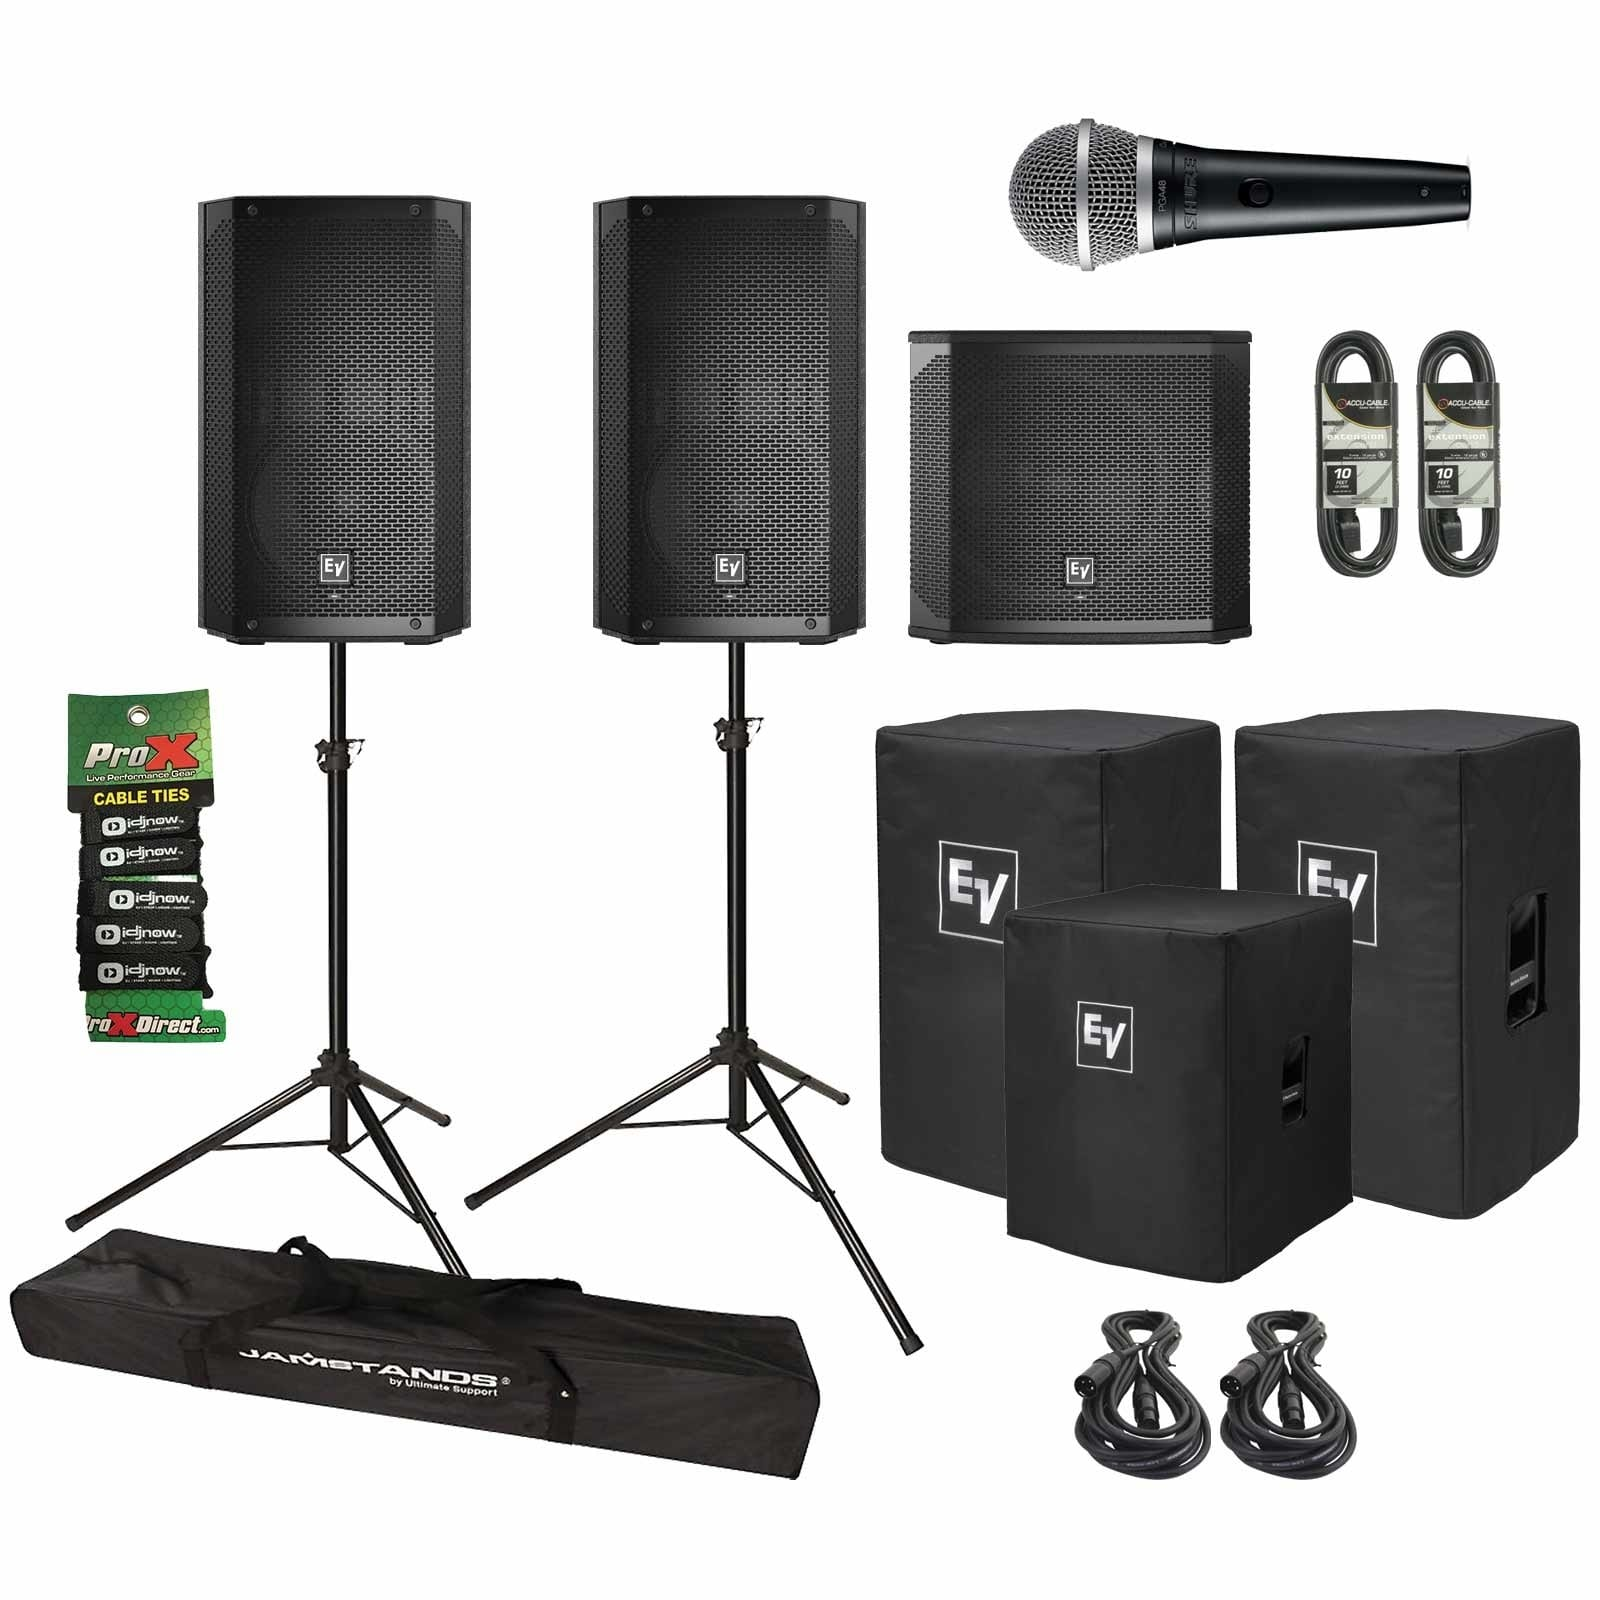 electro-voice-elx200-10p-10-2-way-powered-speakers-elx200-12sp-12-subwoofer-package-650-1.jpg